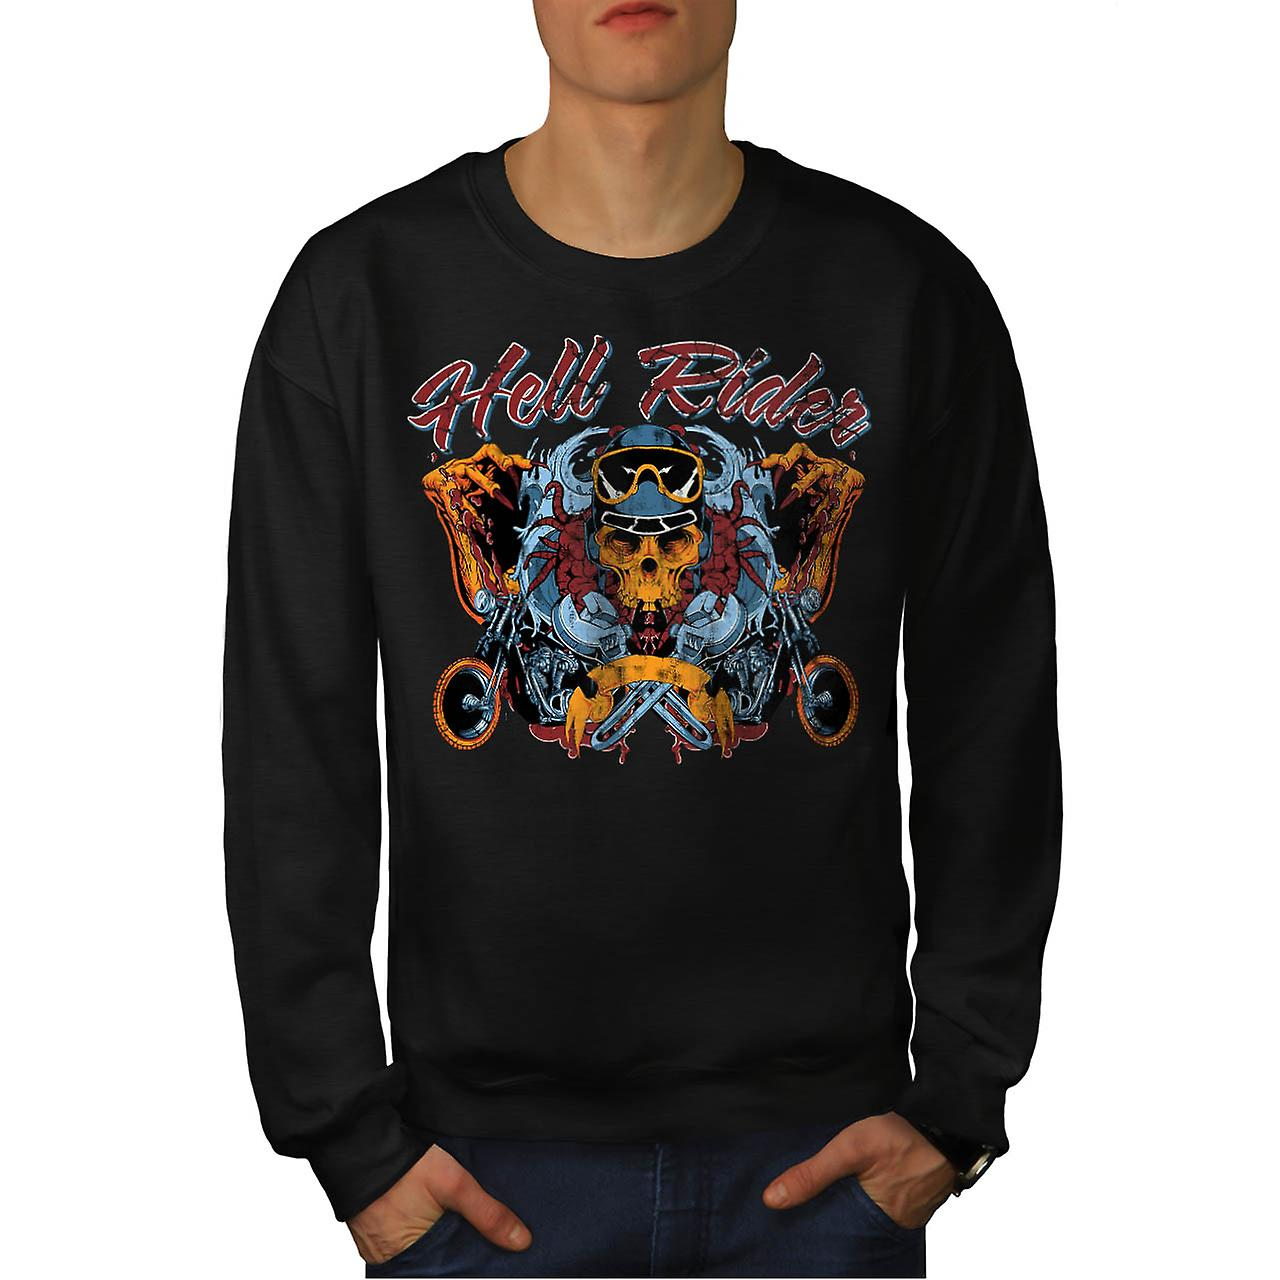 Hell Rider Chopper Biker Life Men Black Sweatshirt | Wellcoda